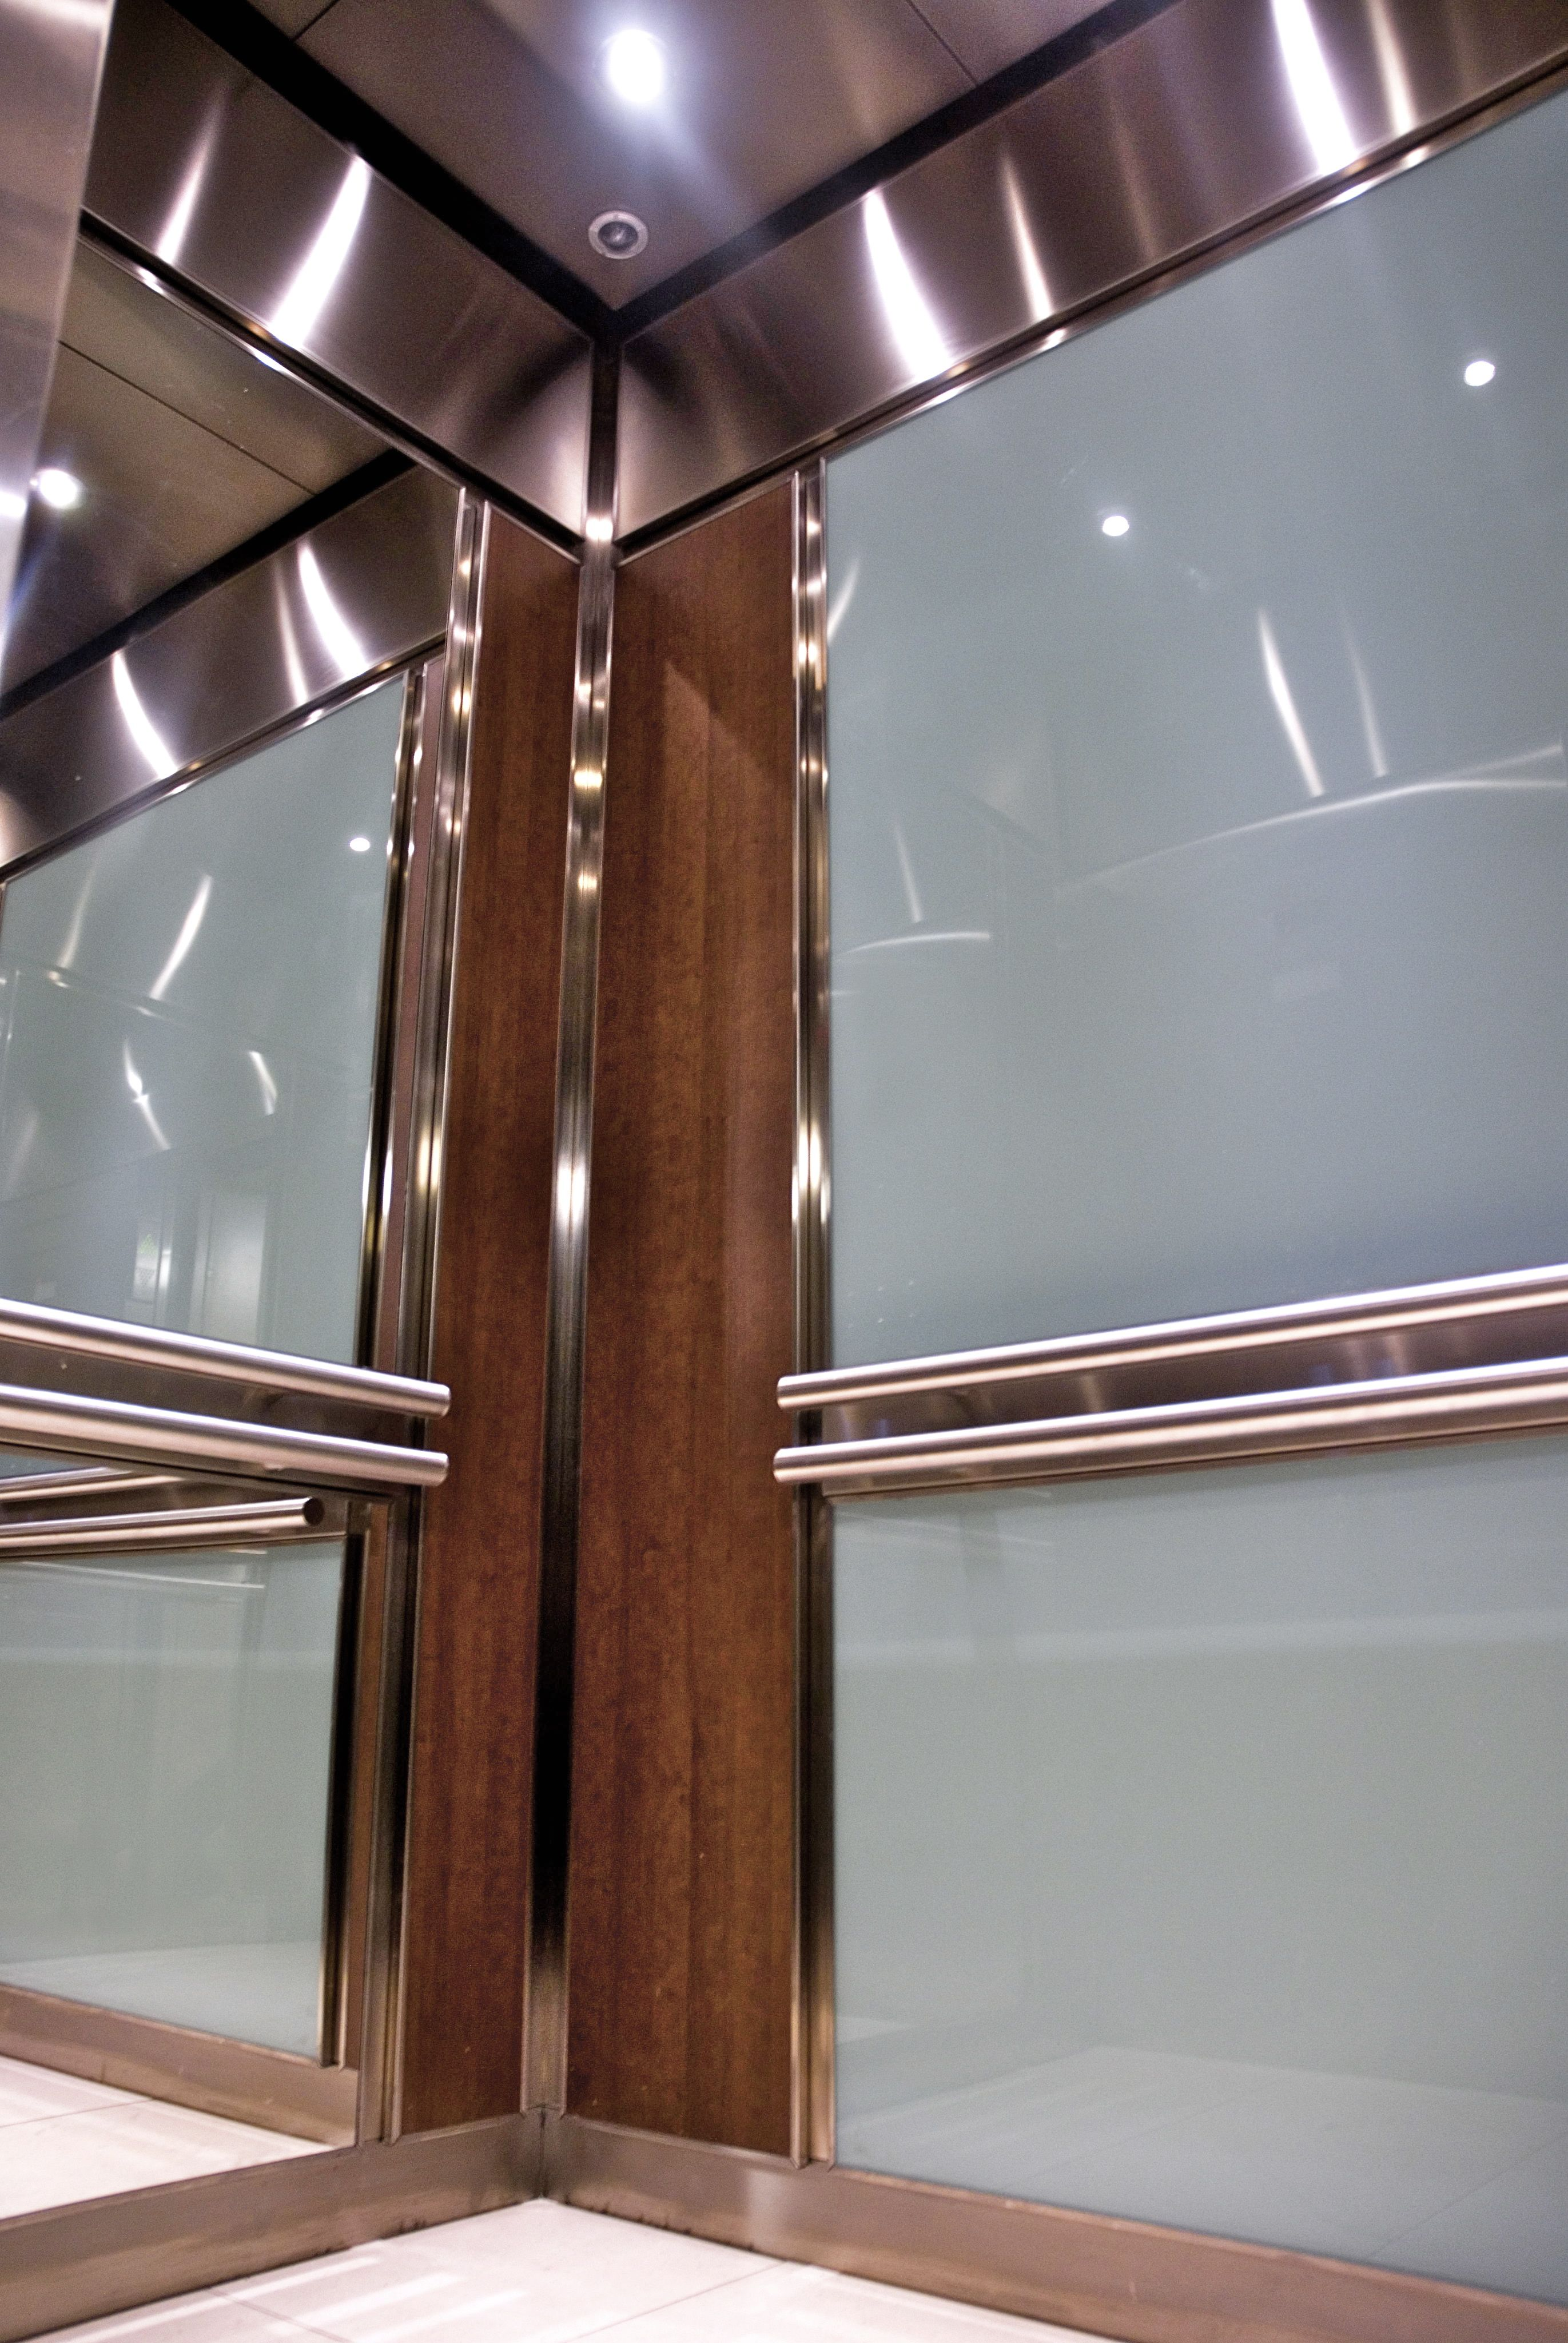 The rear wall of this elevator interior is fitted with for Elevator flooring options